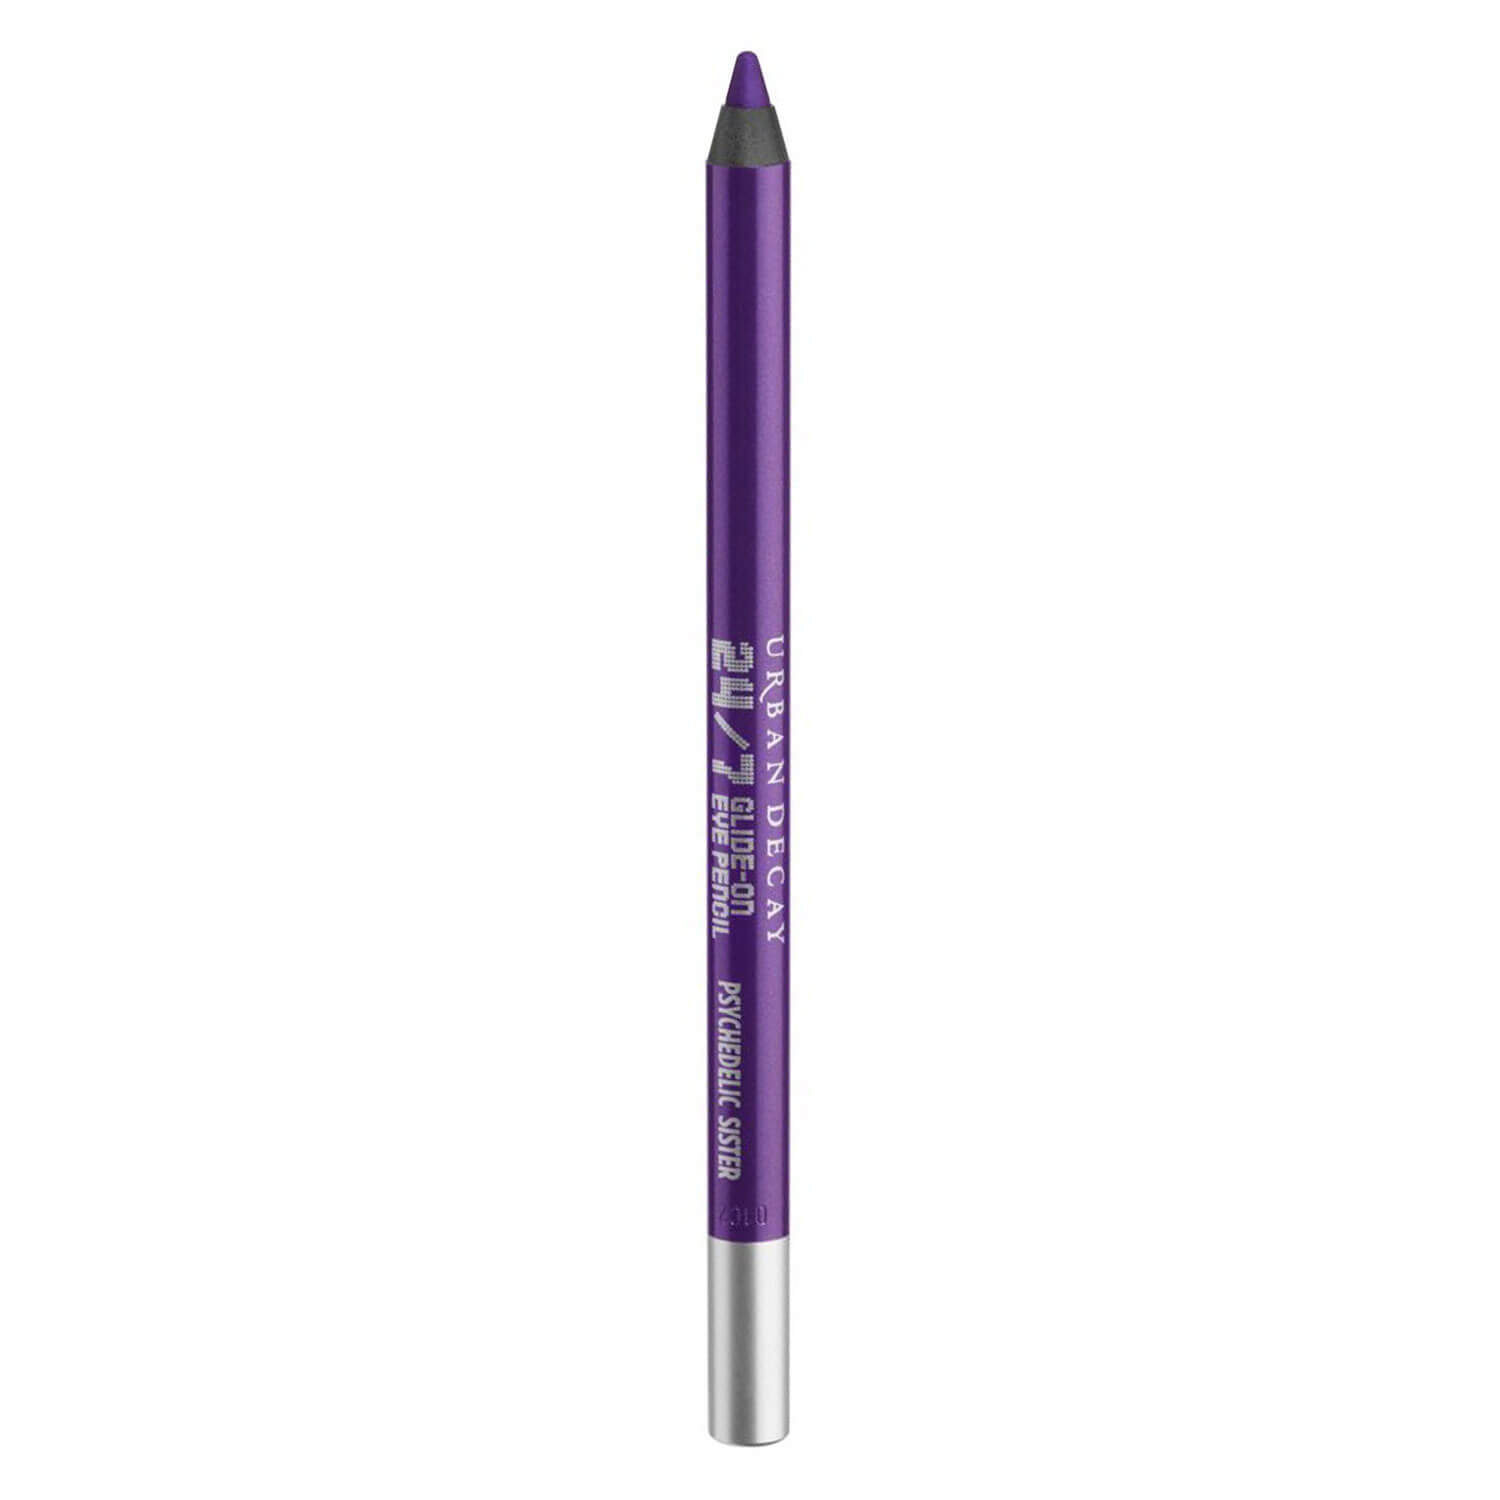 24/7 Glide-On - Eye Pencil Psychedelic Sister